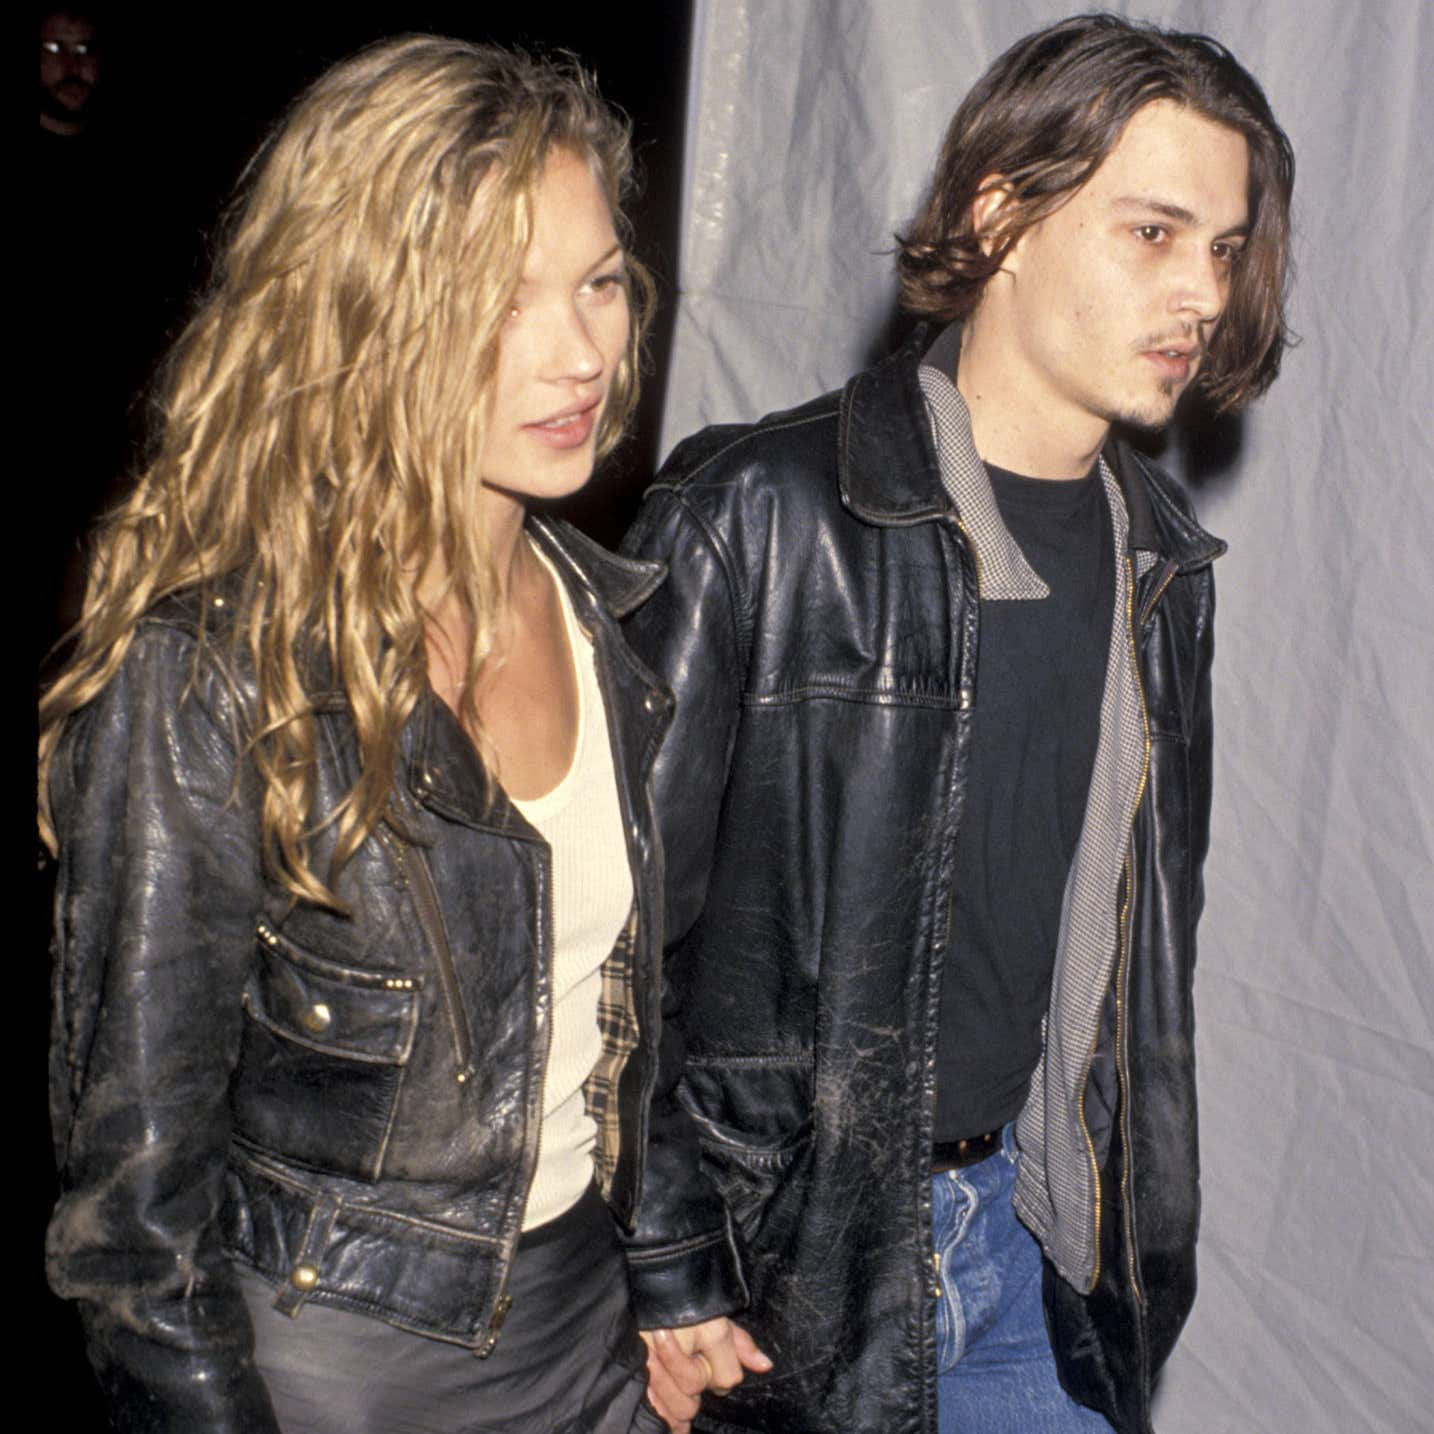 Kate Moss and Johnny Depp (Photo by Jim Smeal/Ron Galella Collection via Getty Images)